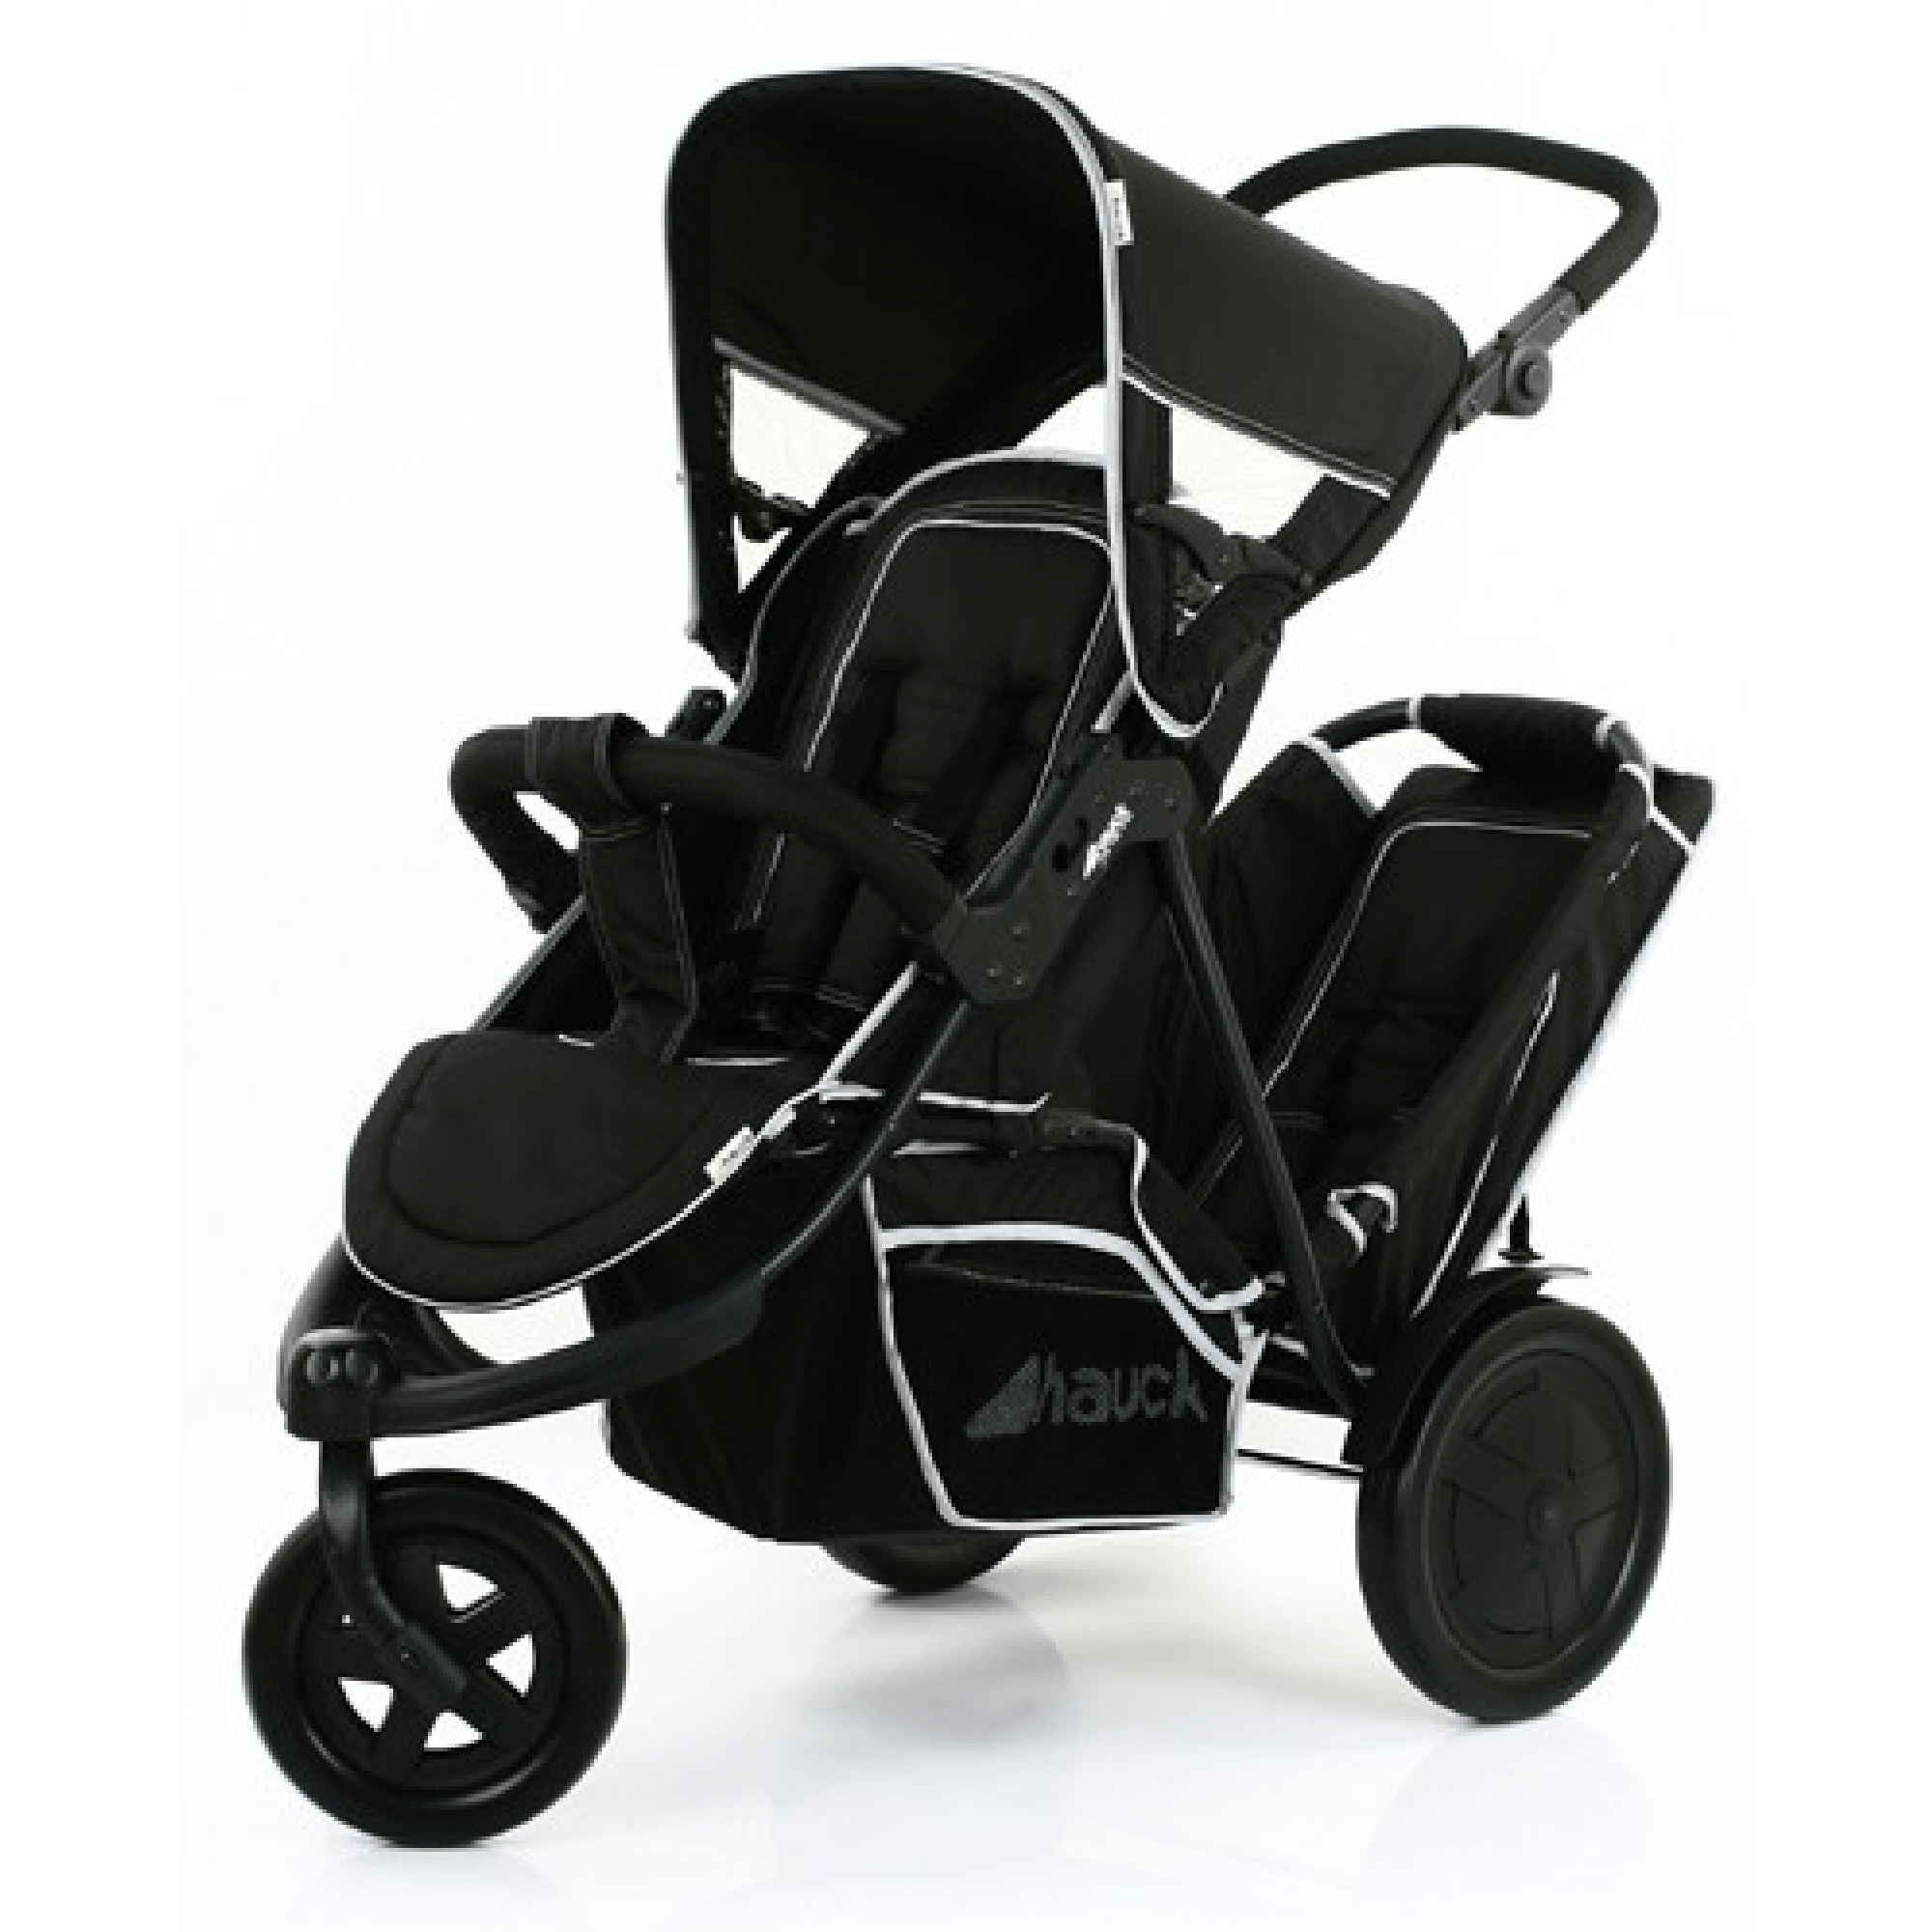 Double Stroller Rain Cover Hauck Freerider In Line Tandem Double Buggy Inc Raincover Black